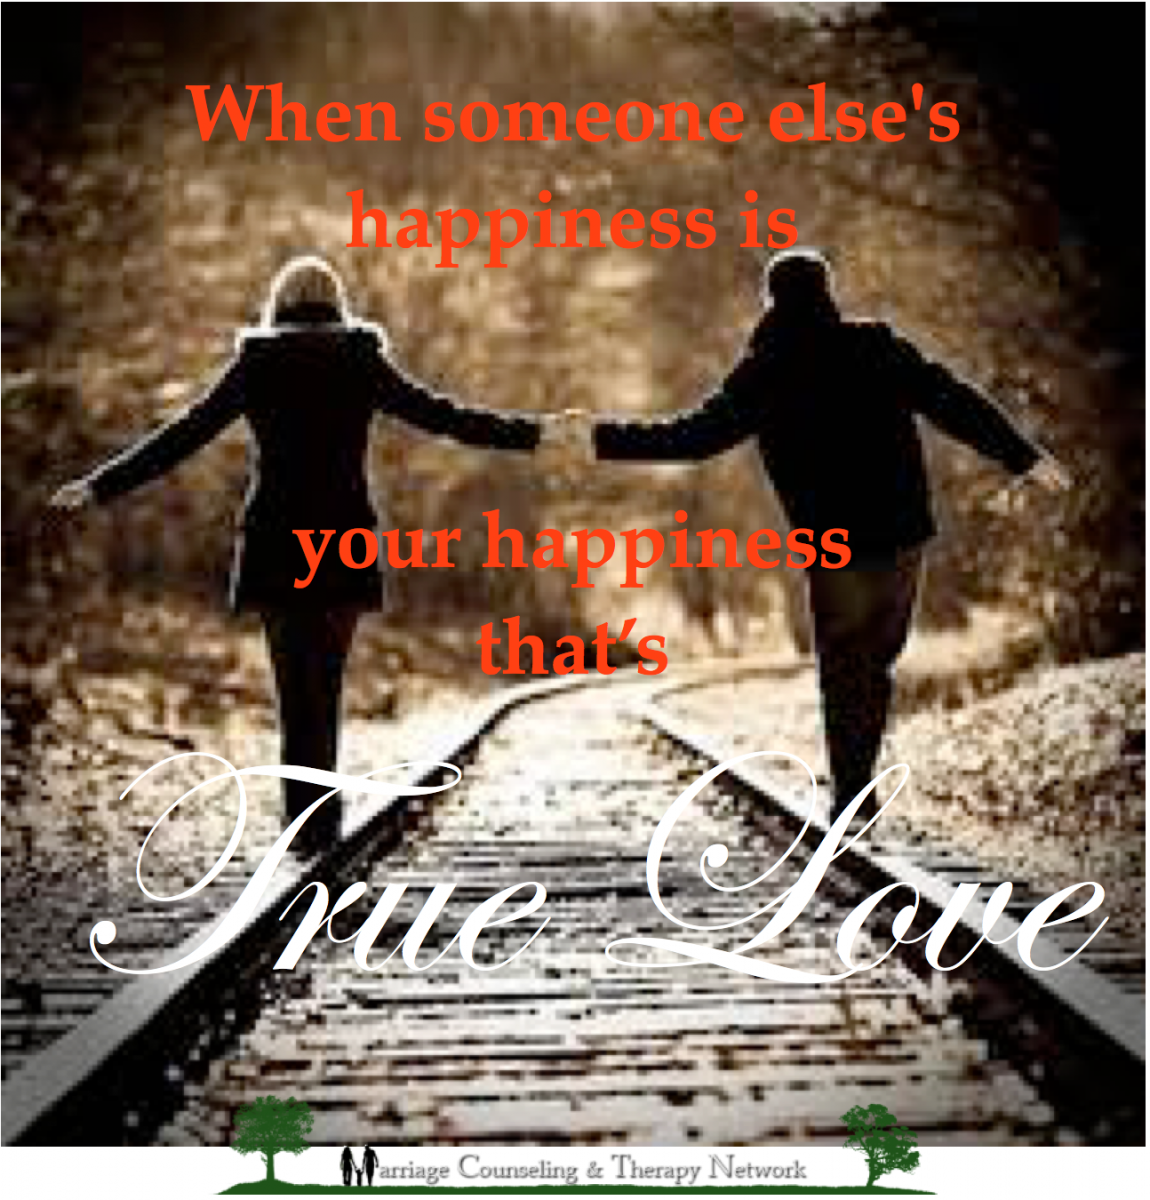 Inspirational I Love You Quotes Marriage Quotes Love Quotes Marriage Quotes Love Quotes When Someone Elses Happiness Is Your Happiness Thats True